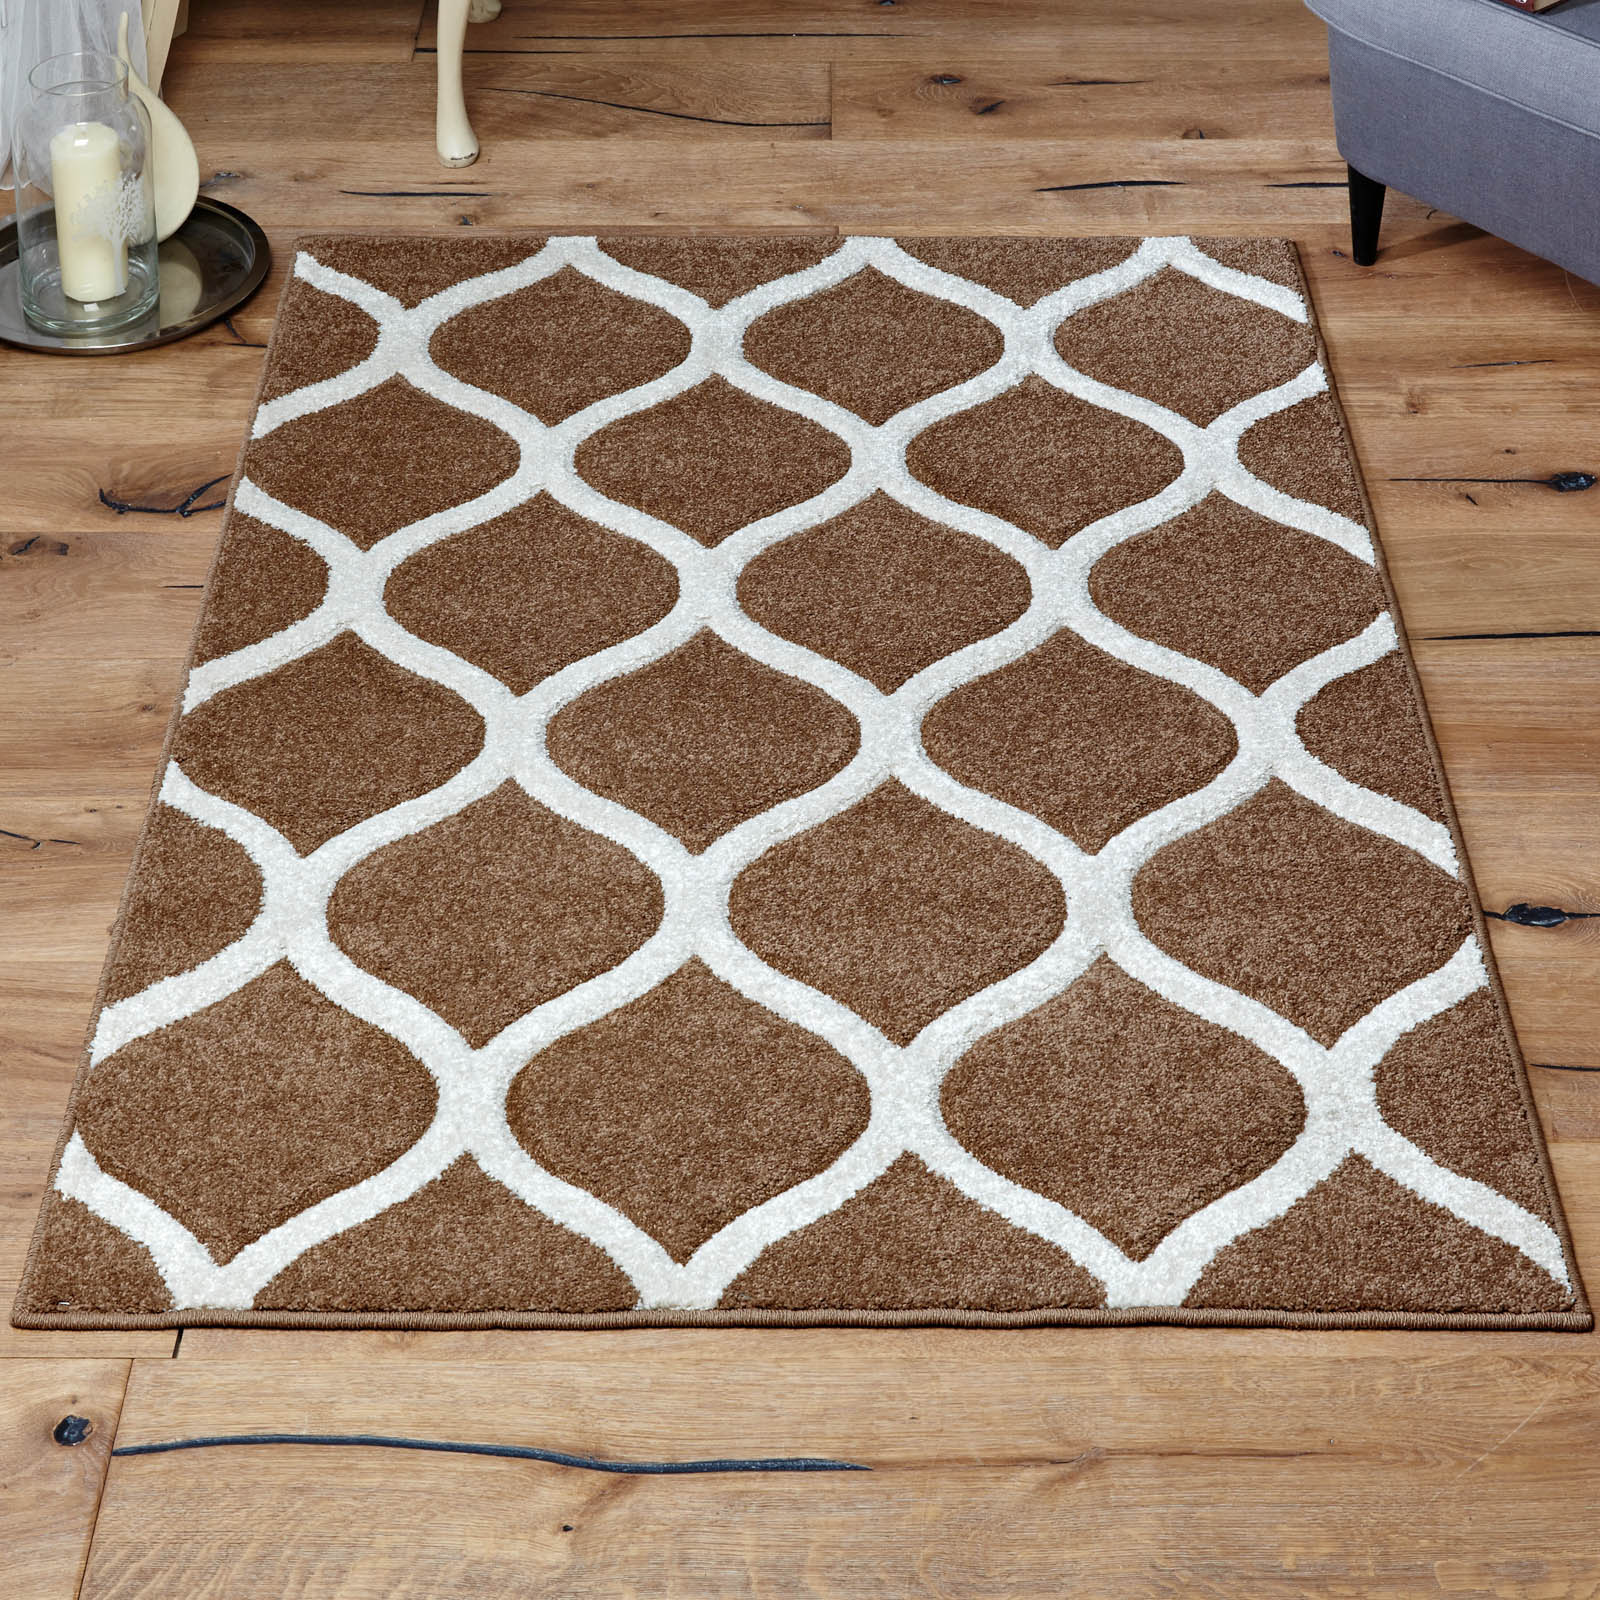 Viva Rug for student bedroom rugs